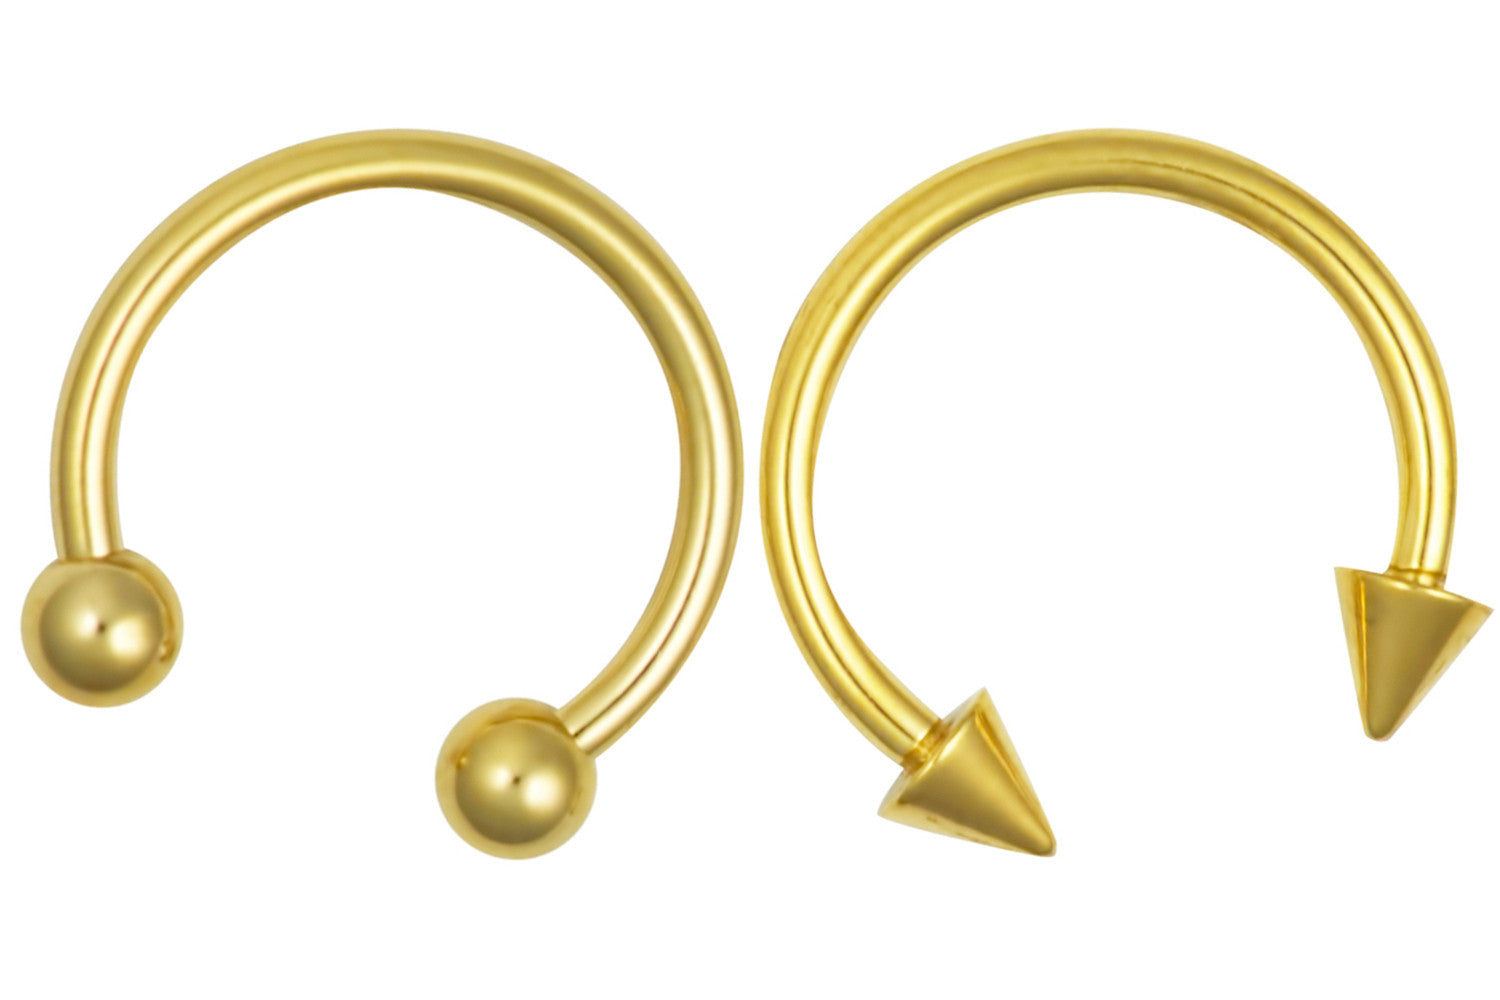 These 16 gauge septum horseshoe rings are made with surgical grade 316L Stainless Steel and Yellow Gold IP plating. IP (Ion Plating) is a safe and permanent fusion coating process used to enhance the durability, color and shine of body jewelry. These body jewelry rings are hypoallergenic and nickel free.